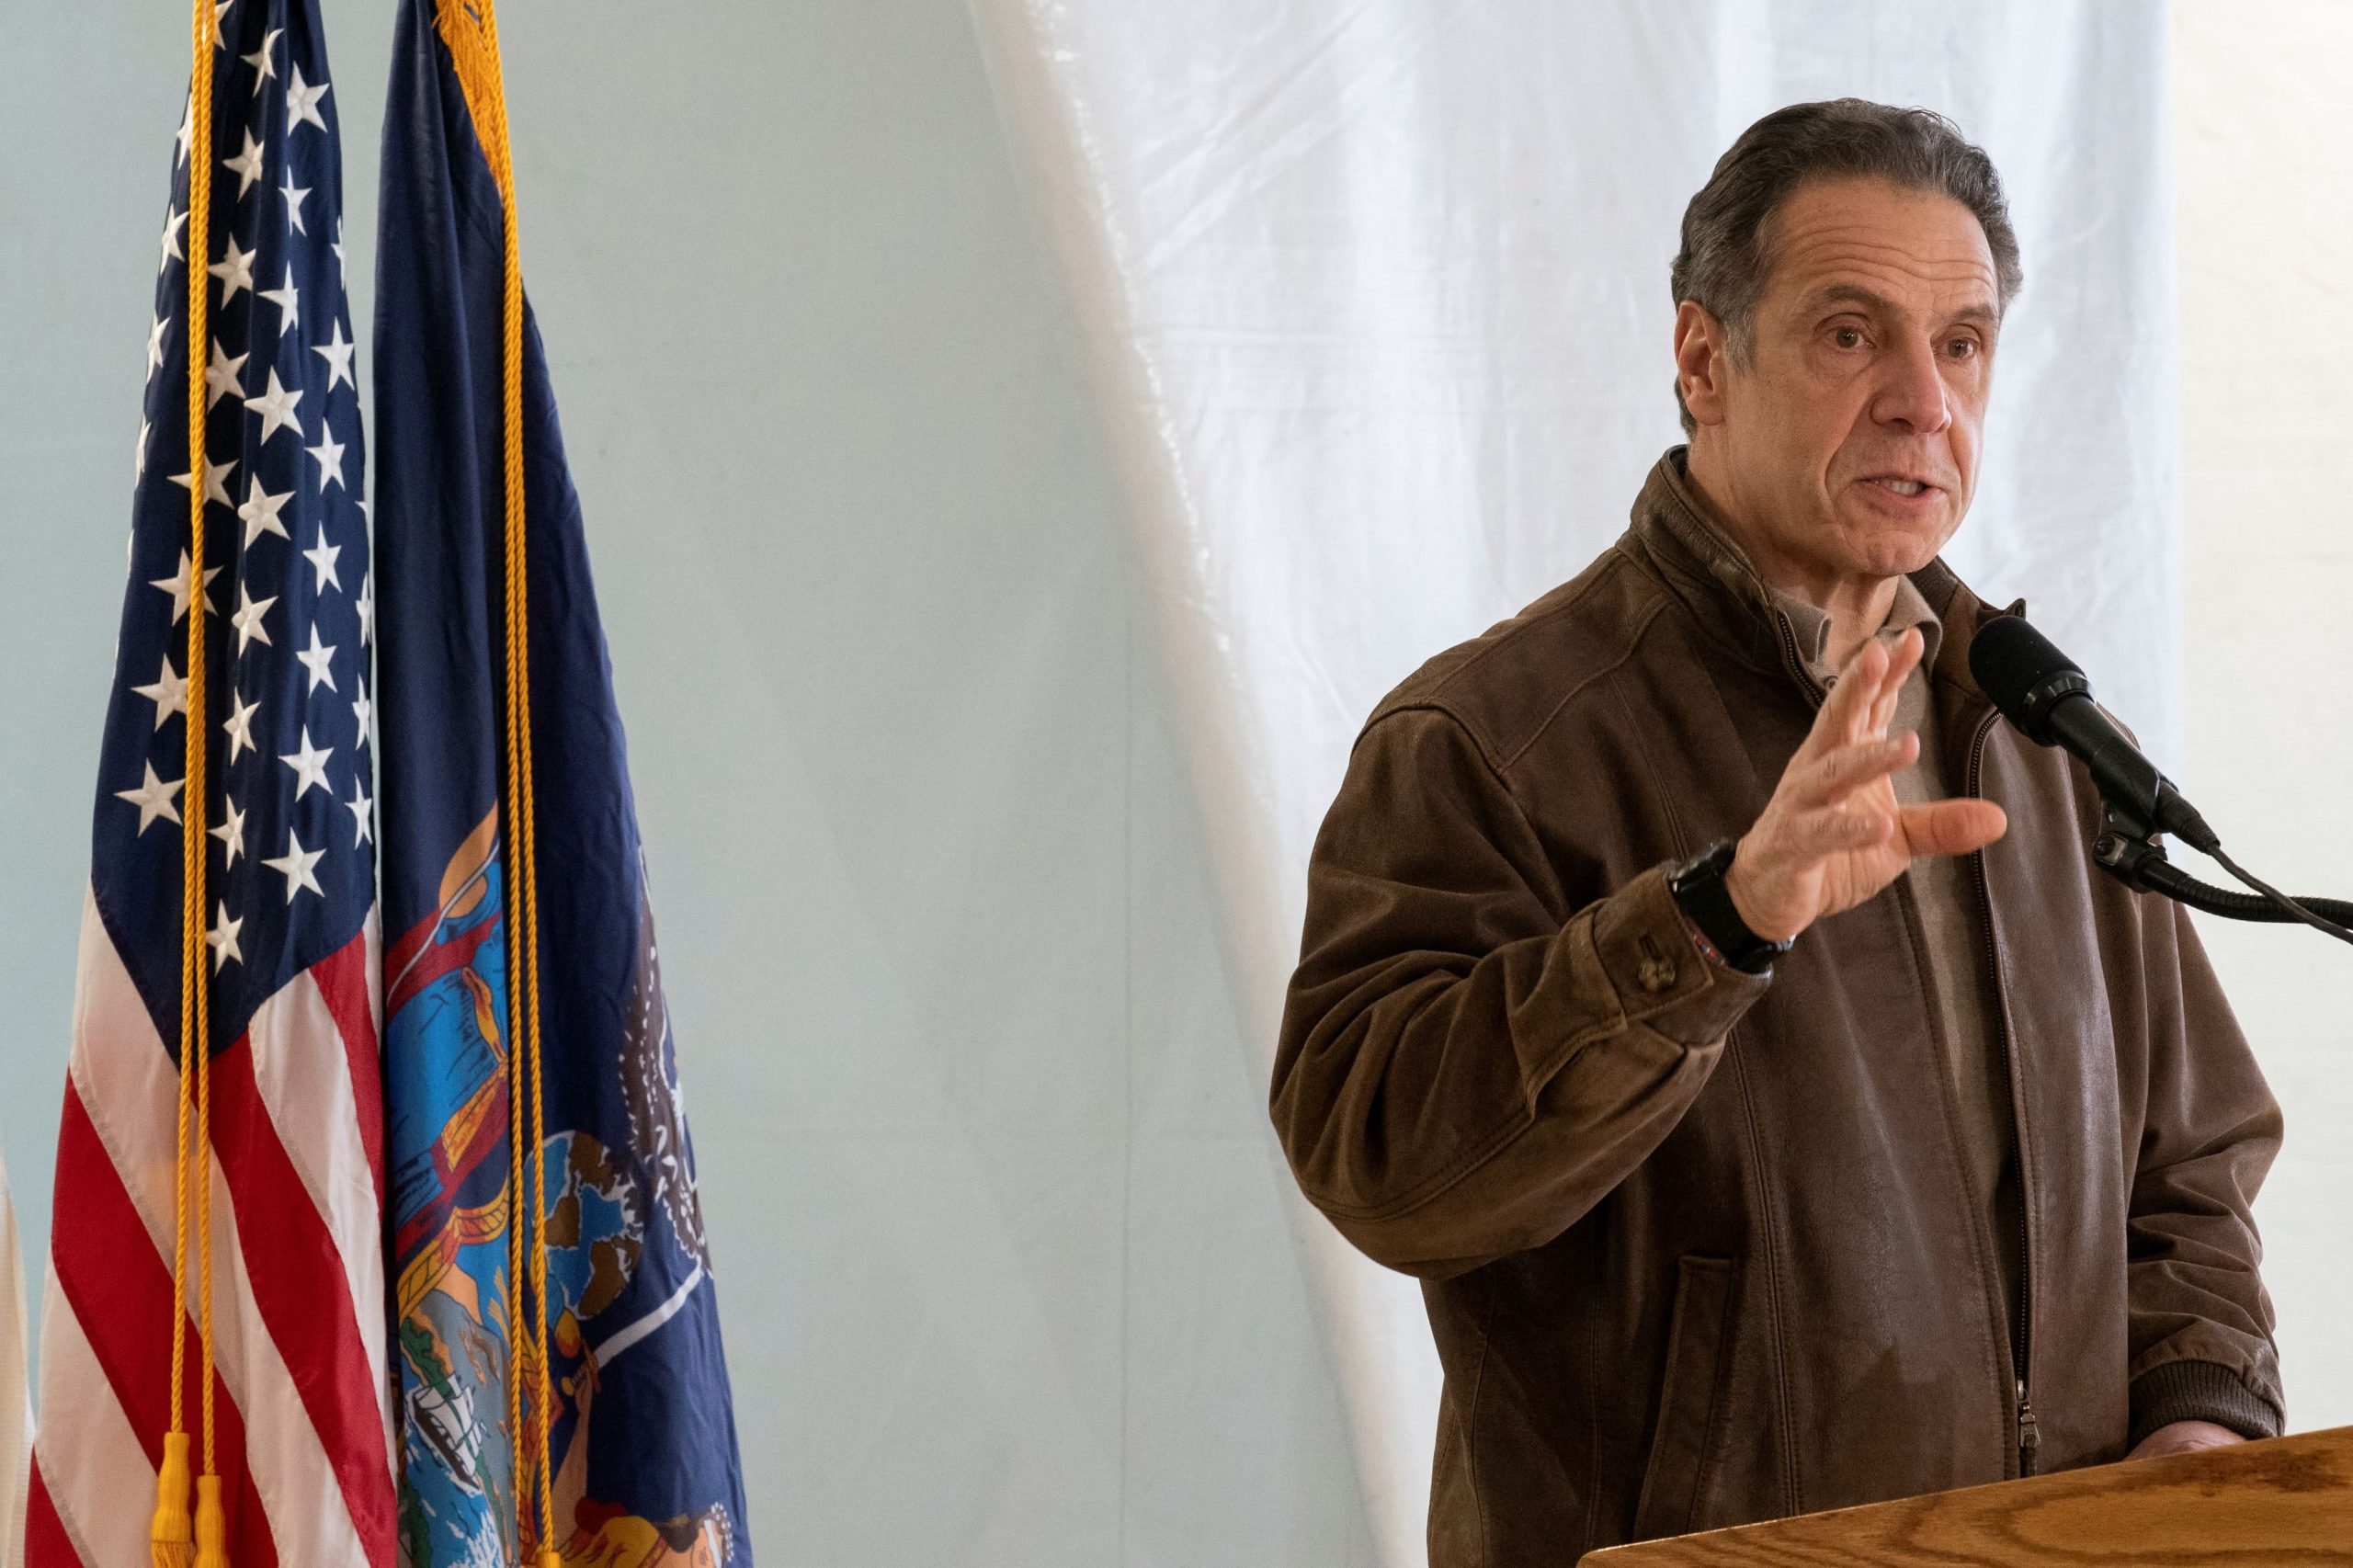 Cuomo, facing pressure from Democrats, agrees to independent probe of sexual harassment allegations